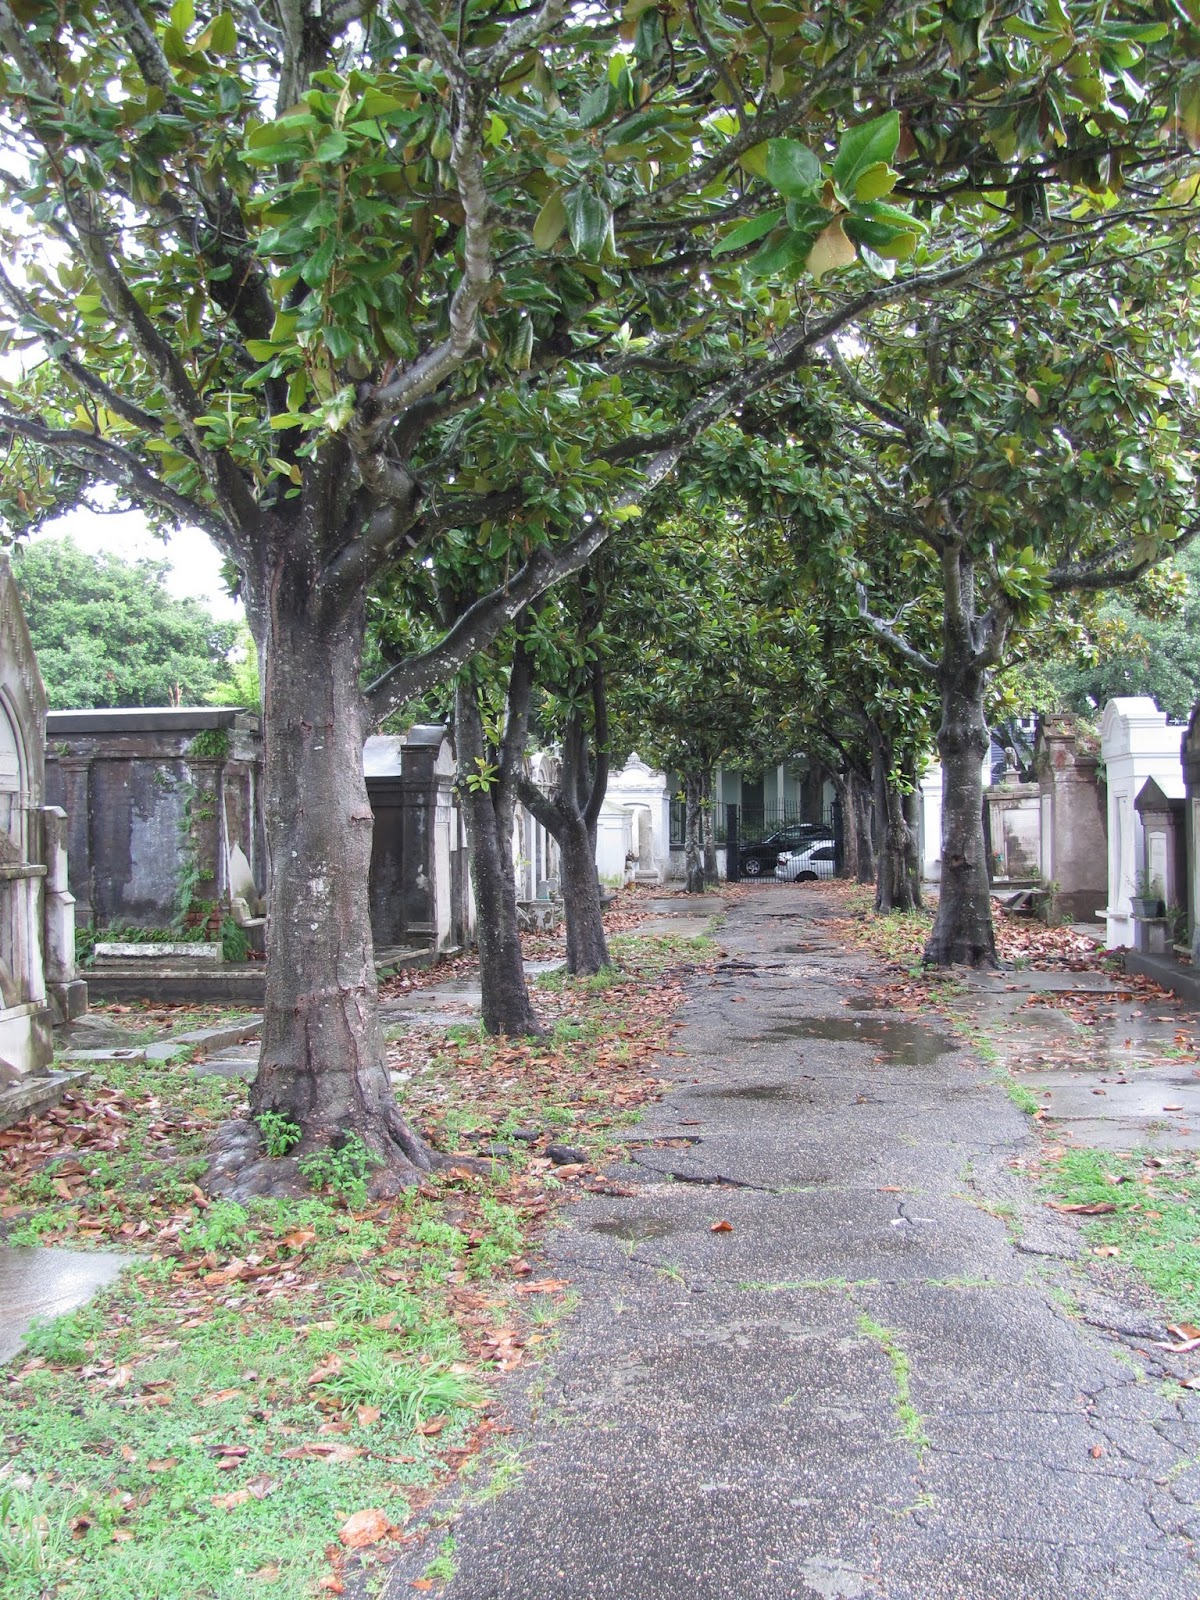 Wet pavement marks the path at LaFeyette Cemetery in New Orleans, LA